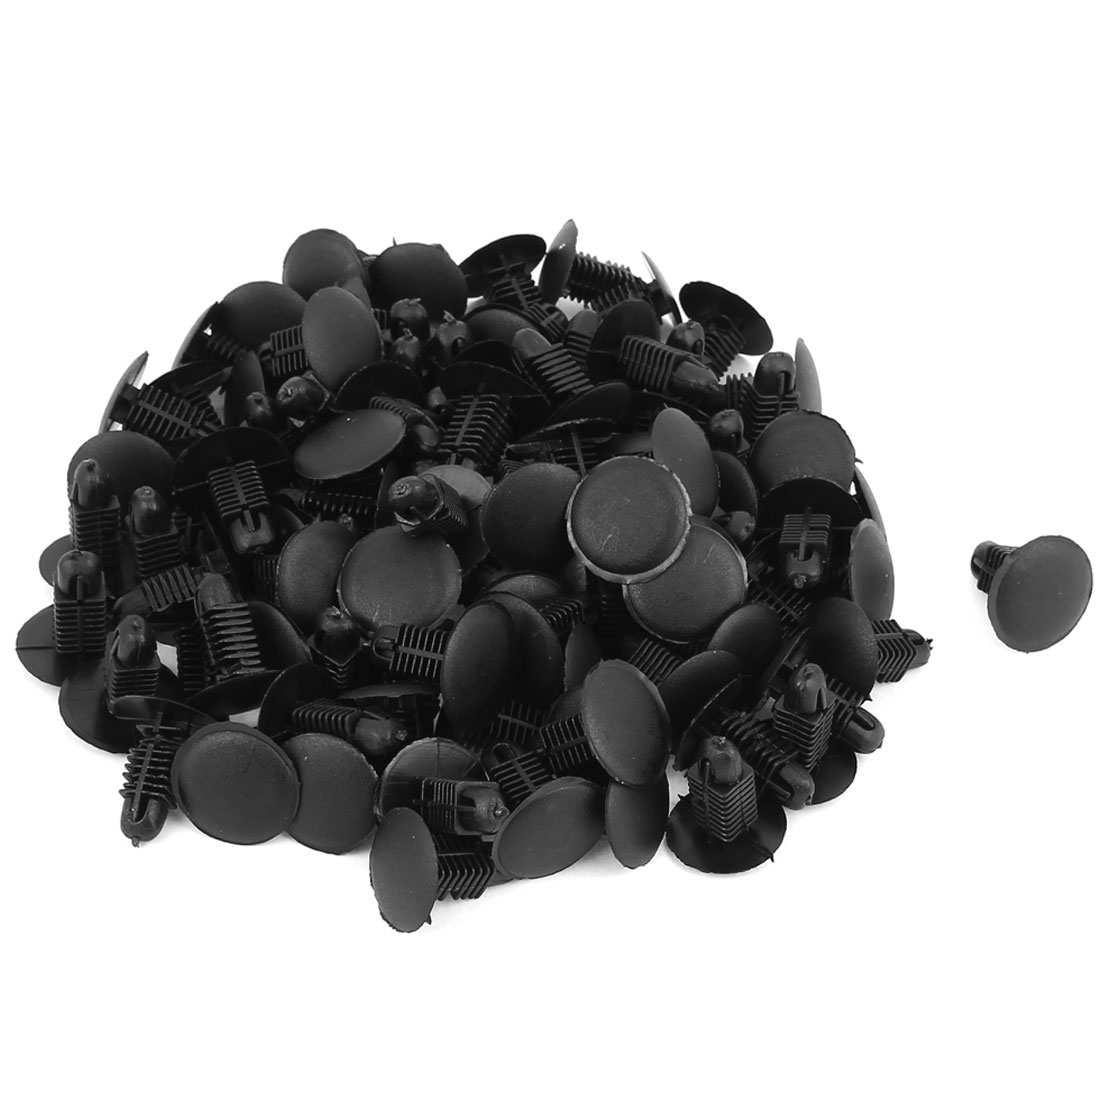 Plastic Push in Type Rivets Fastener Car Auto Fender Bumper Clip Clamp Black 100pcs